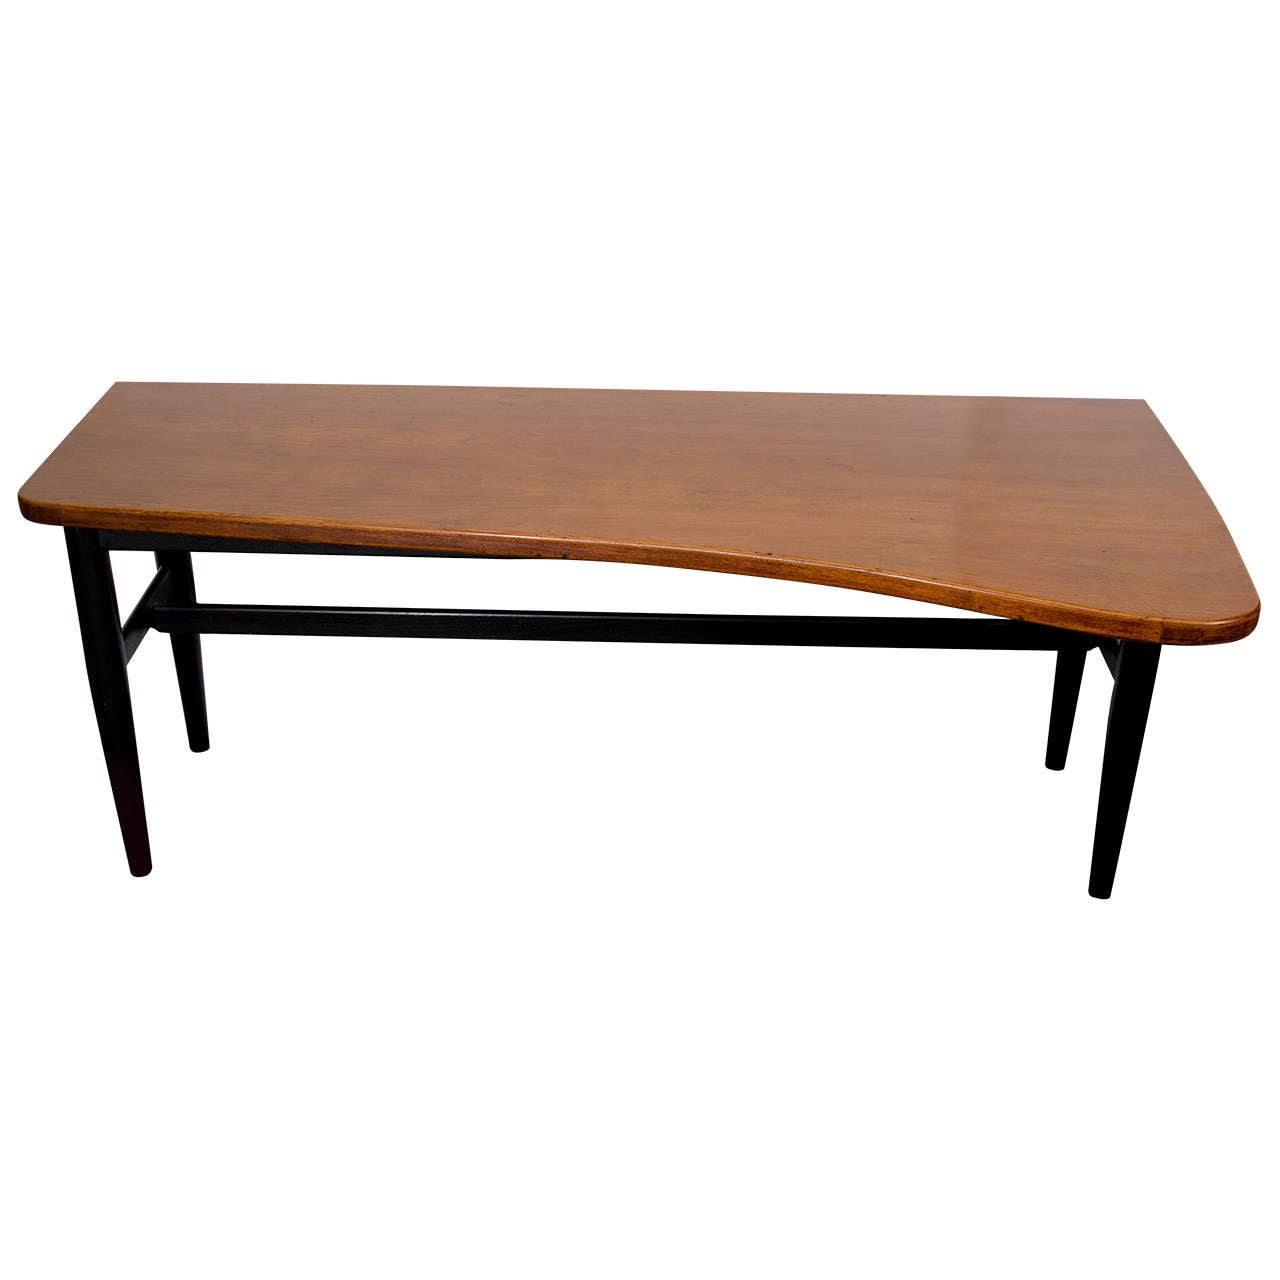 Midcentury Asymmetrical Drop Leaf Wooden Coffee Or Cocktail Table By Baker At 1stdibs